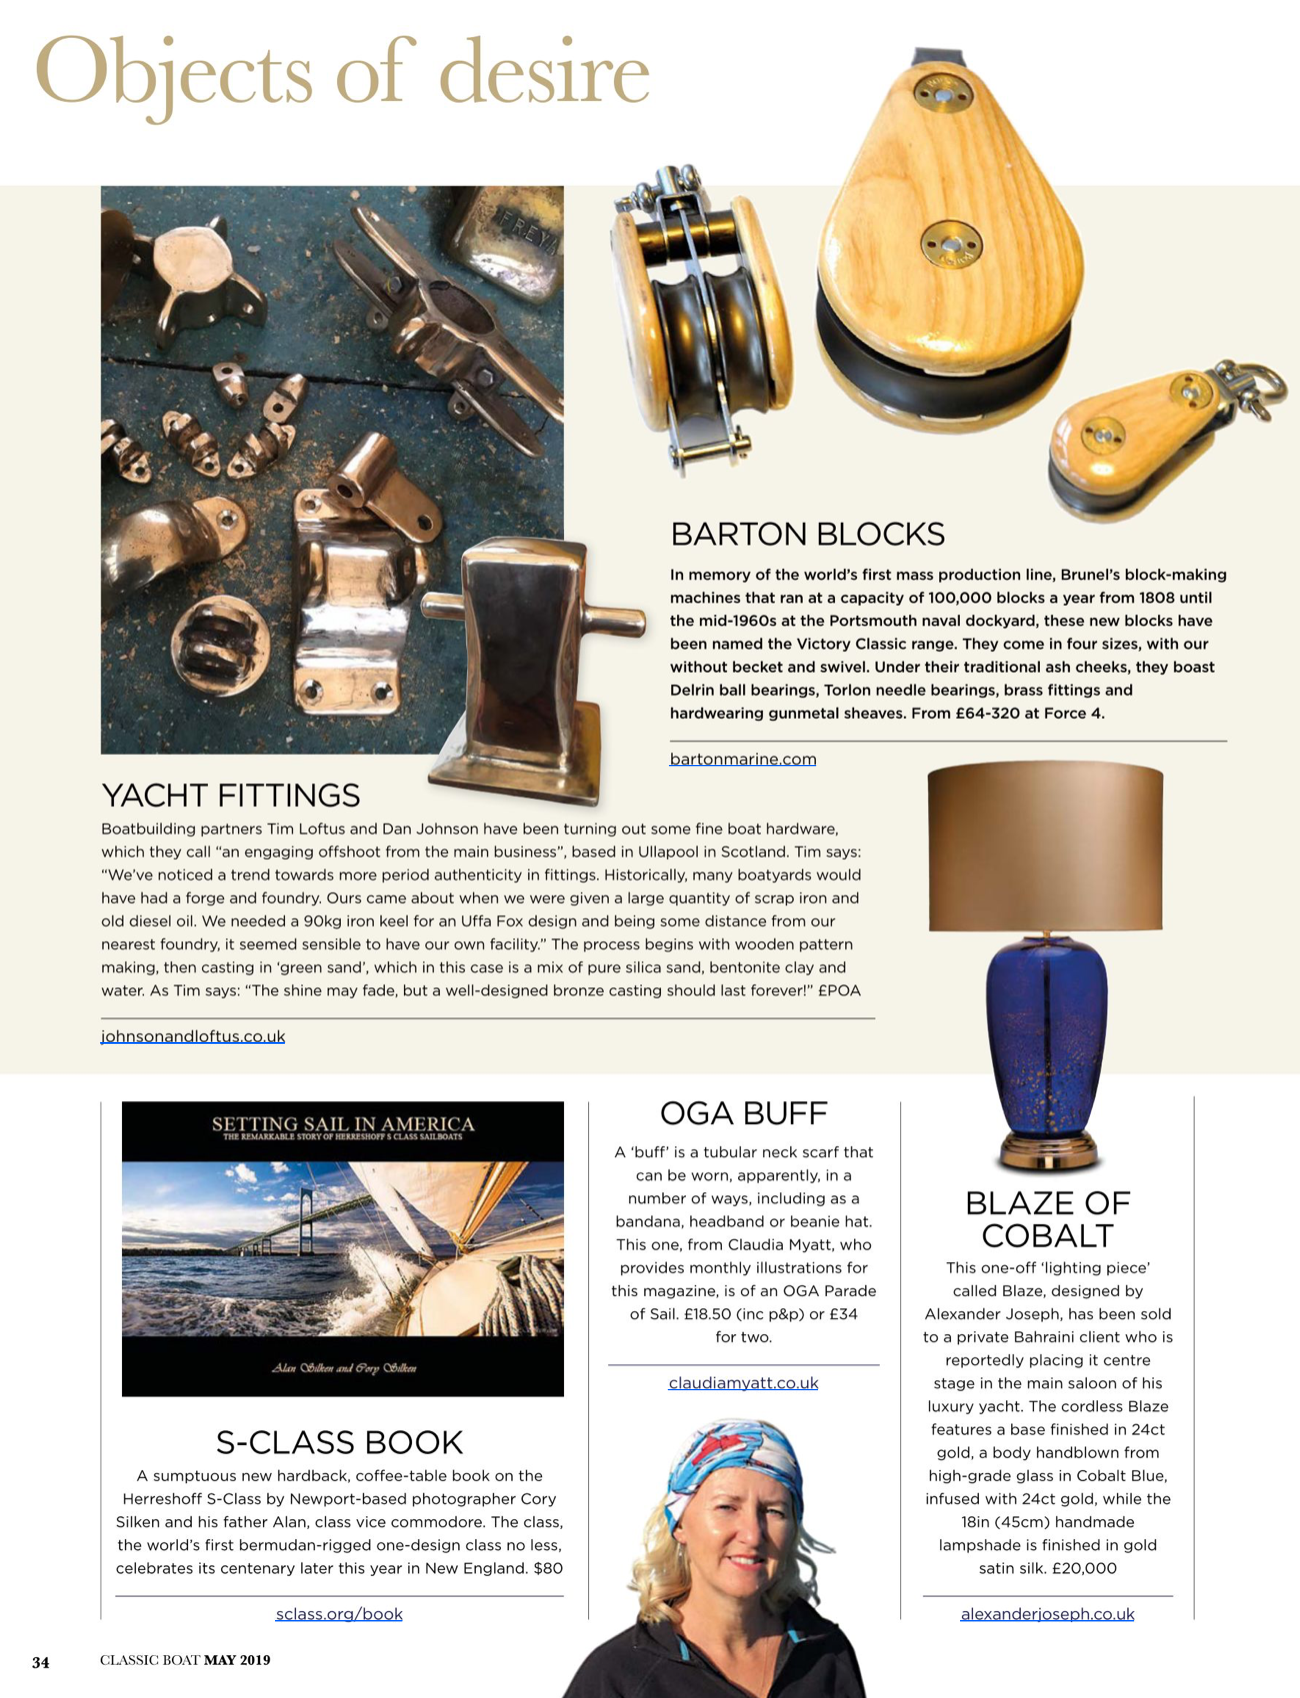 Classic Boat - May 2019